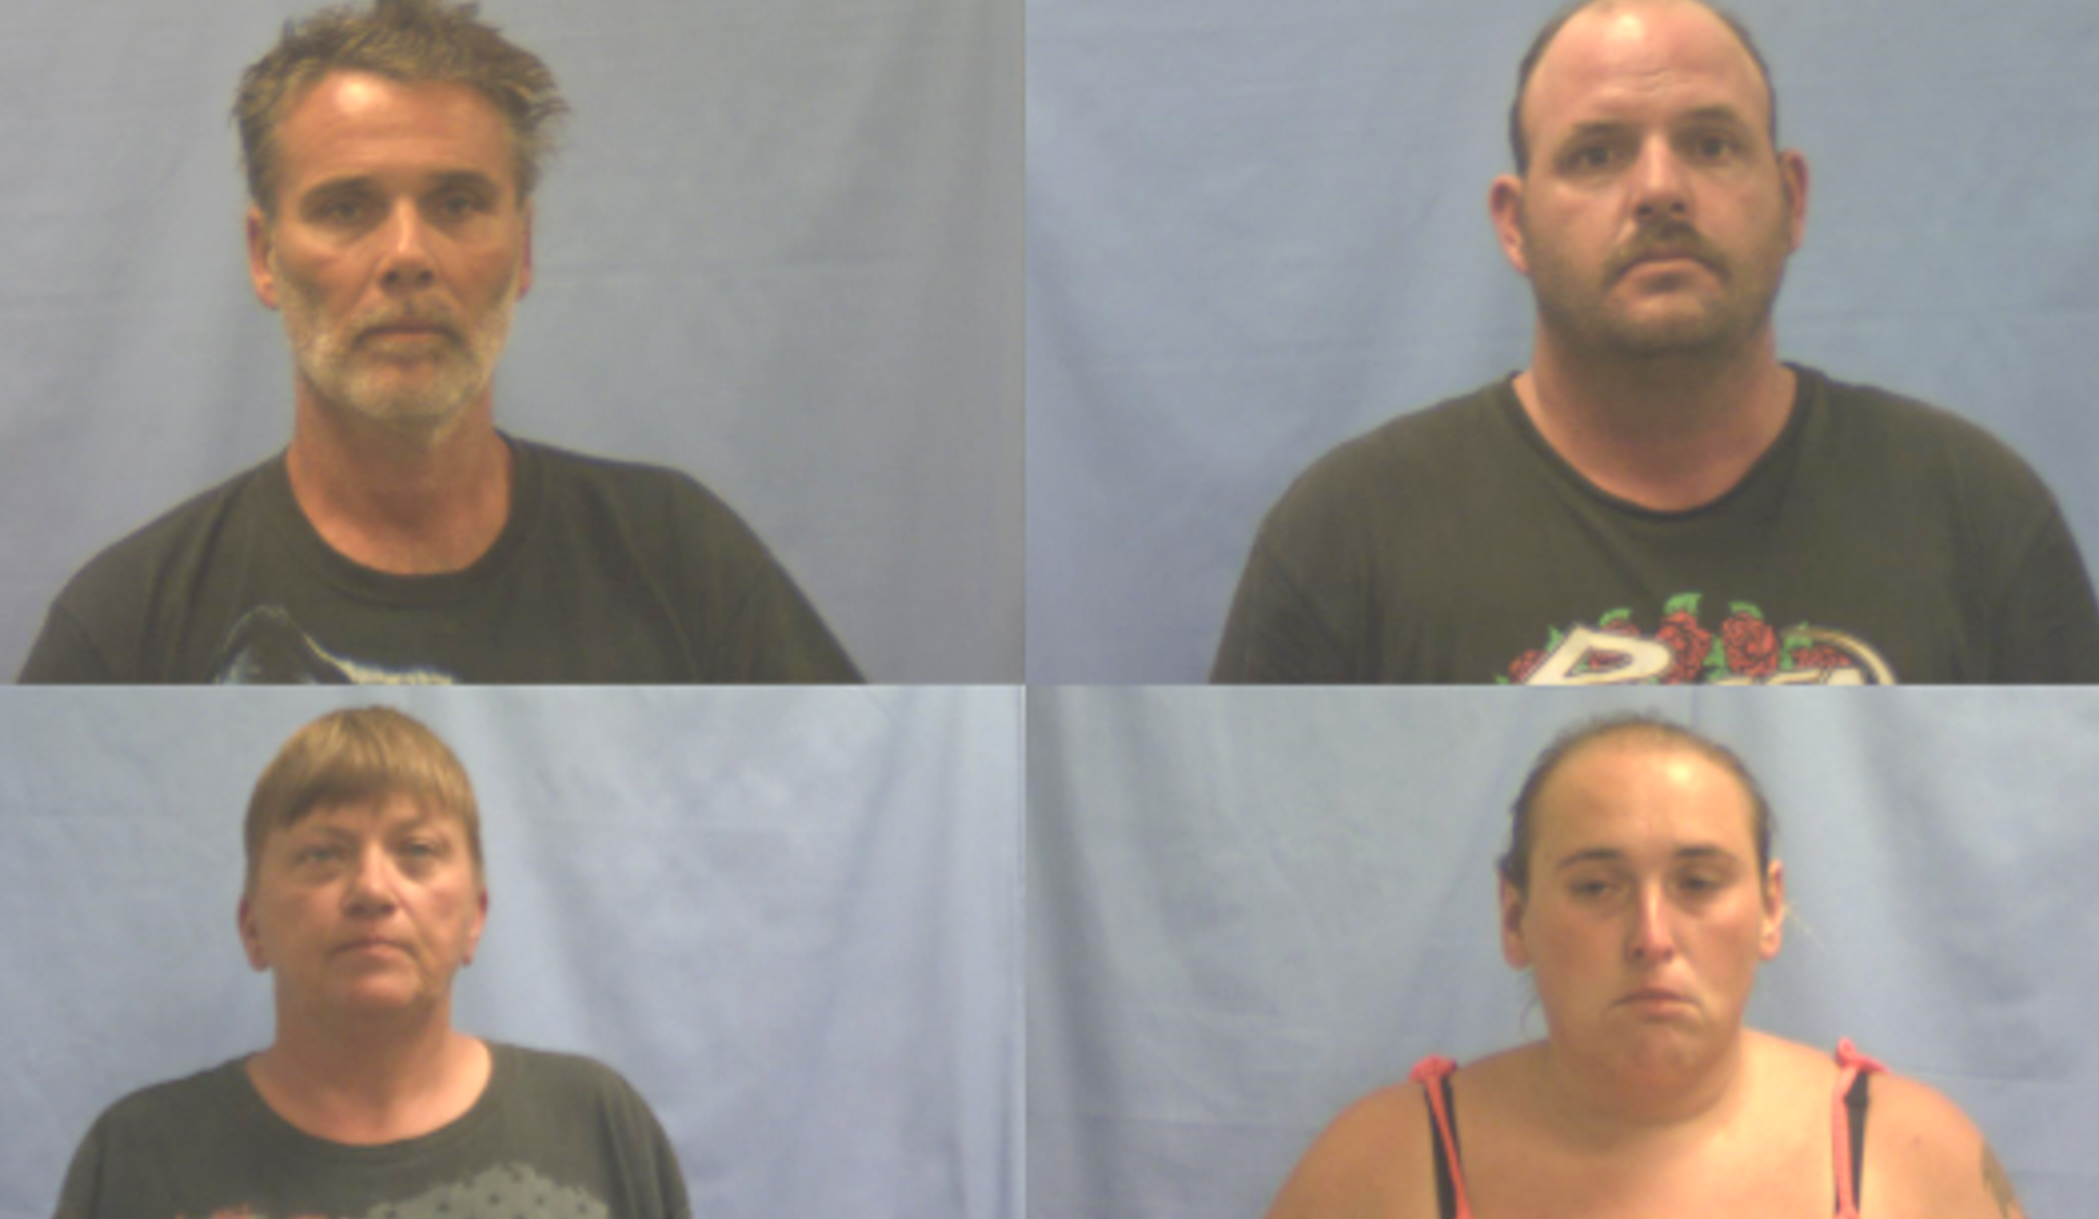 Traveling Carnival Worker Confesses To Killing 3 Women, But Insists All Deaths Were Accidental